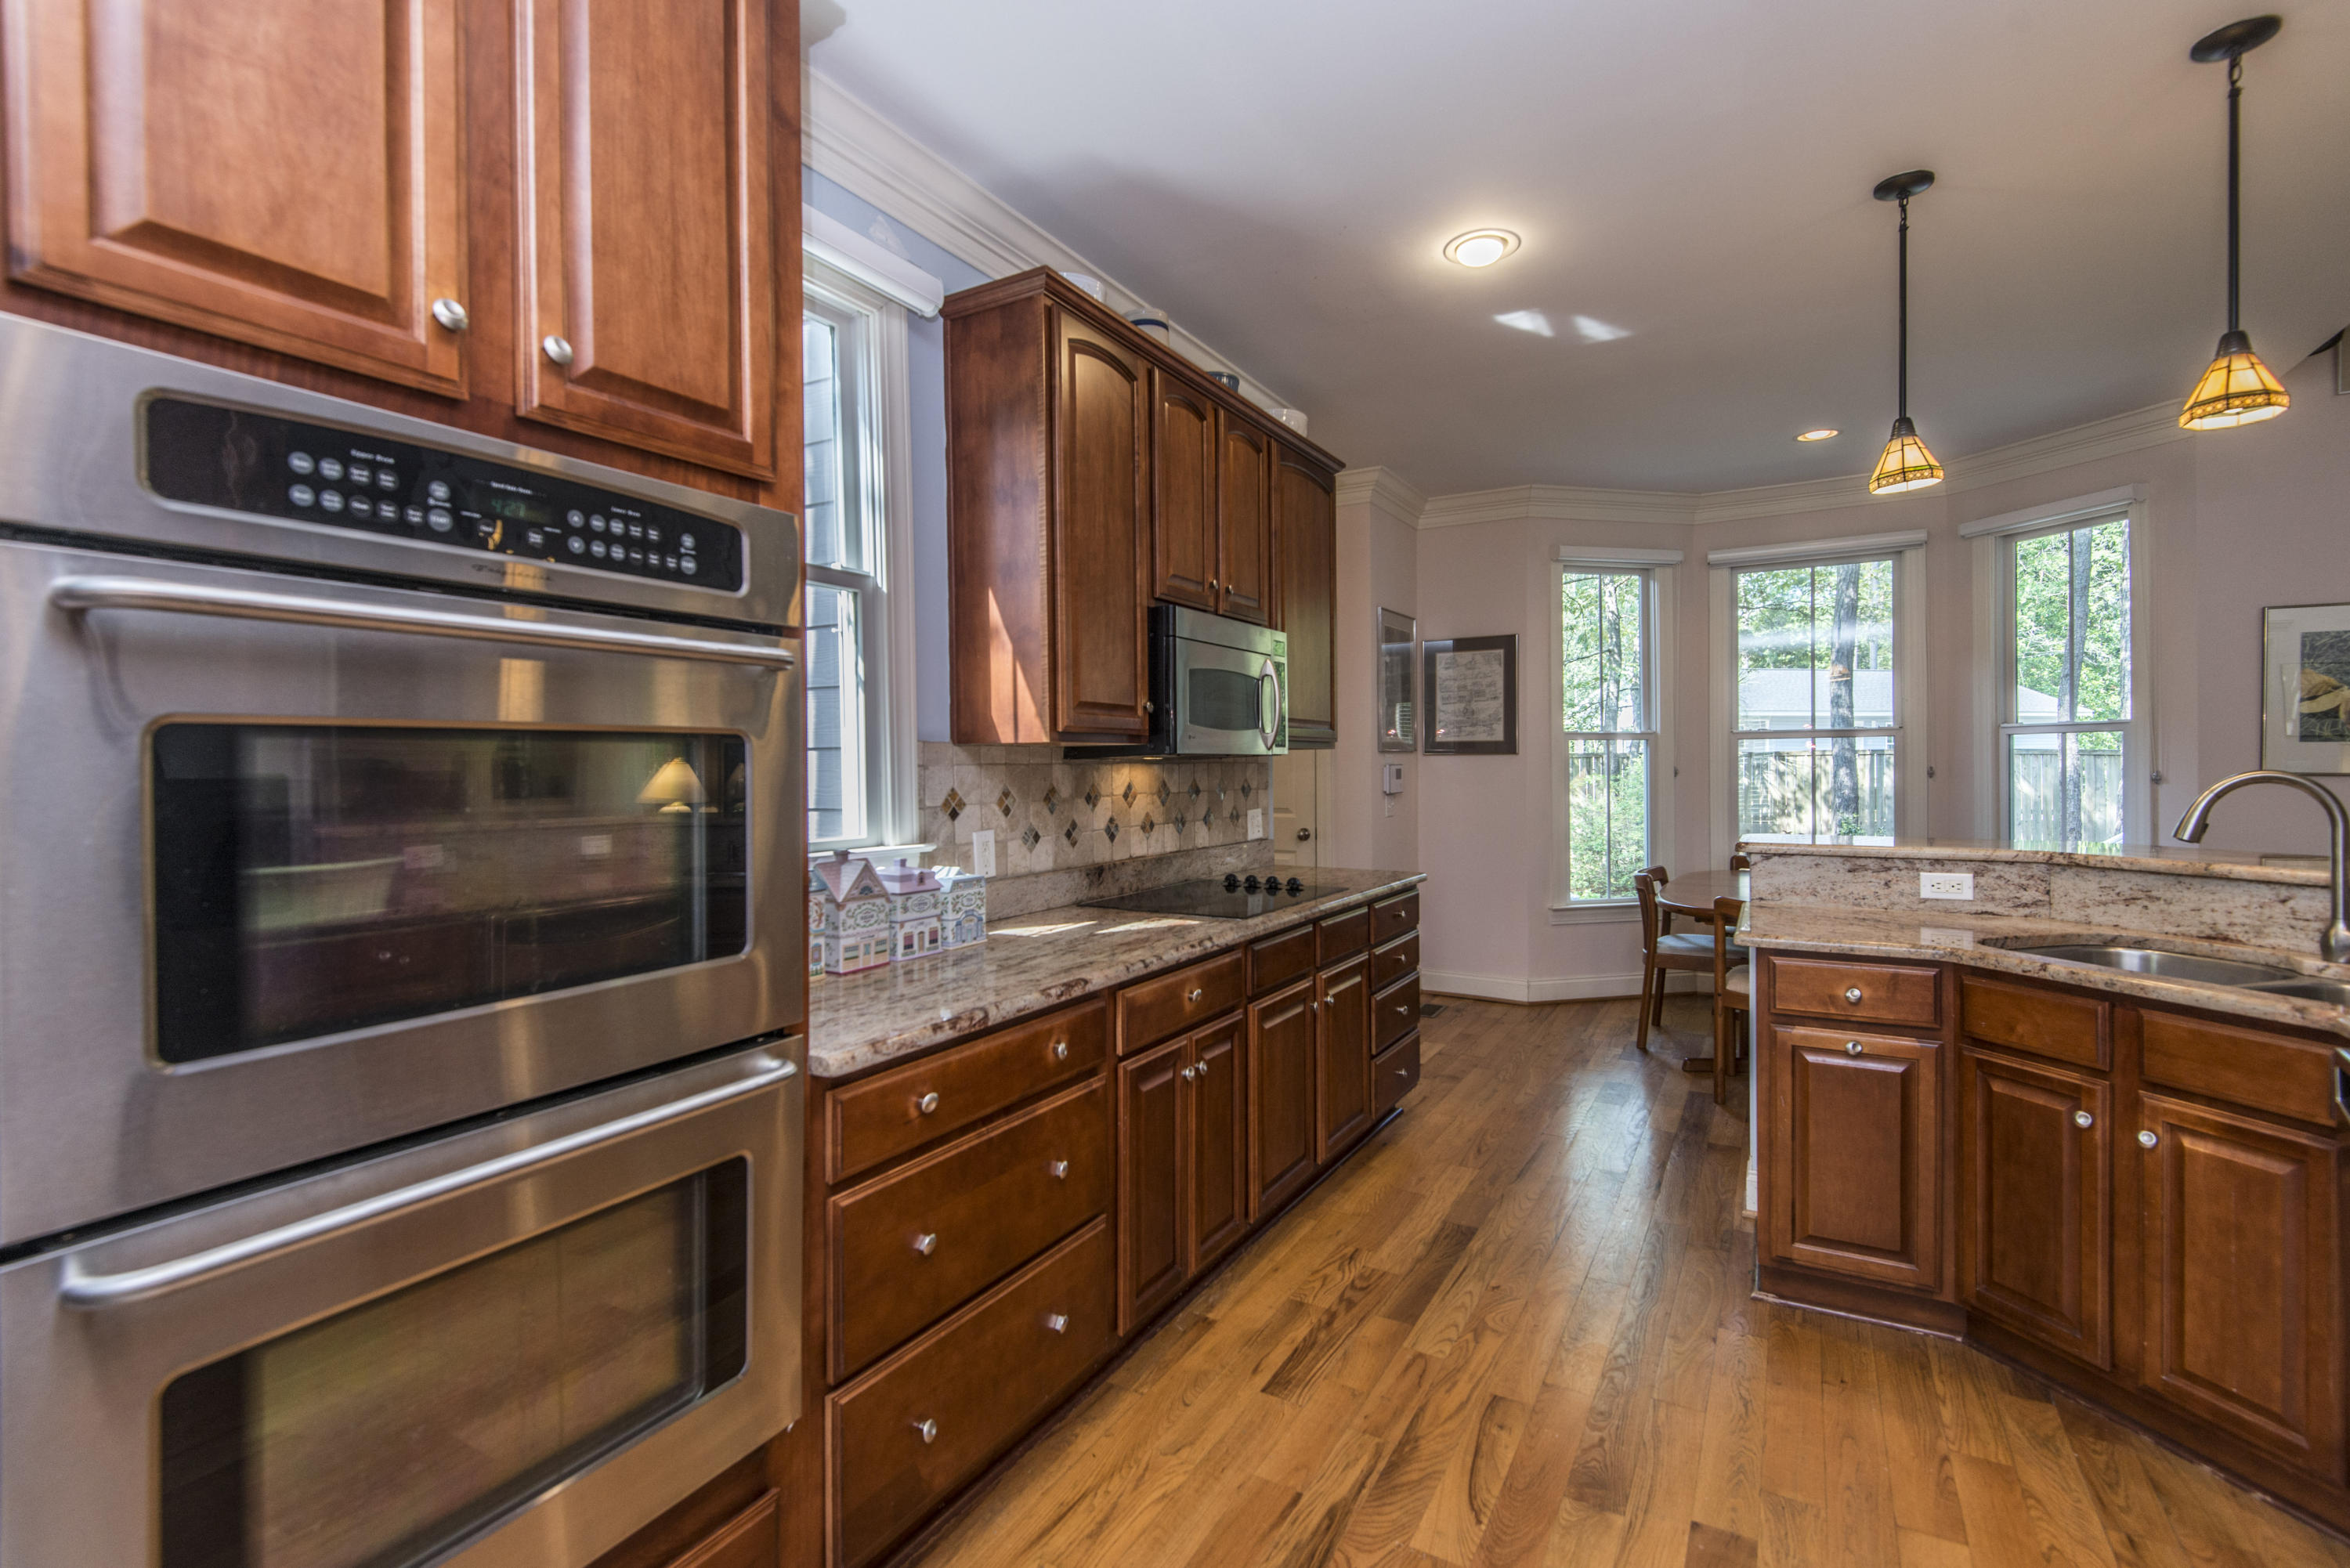 The Villages In St Johns Woods Homes For Sale - 4087 Amy, Johns Island, SC - 9